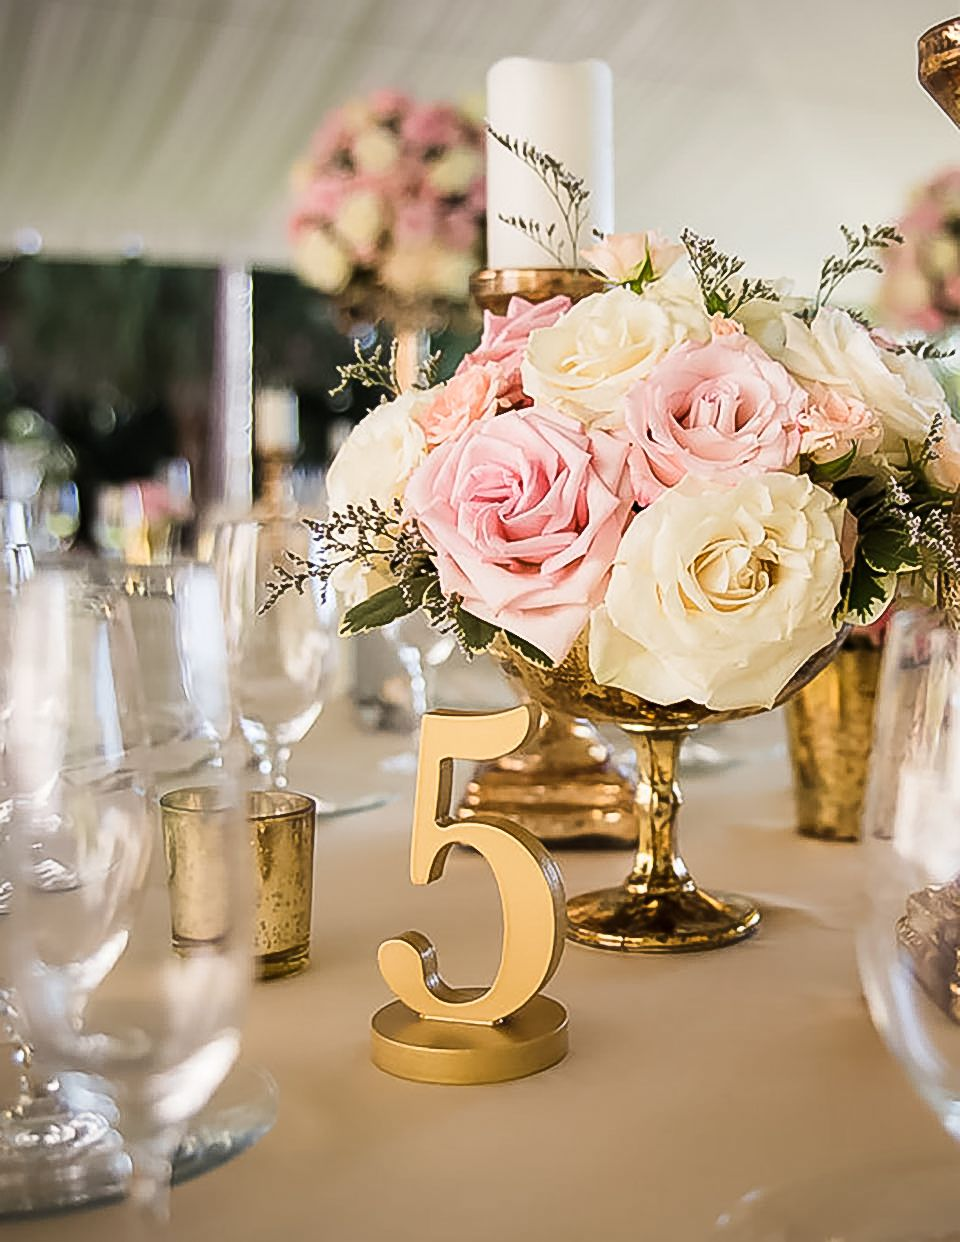 Painted Wedding Table Numbers | Handmade table, Table numbers and ...